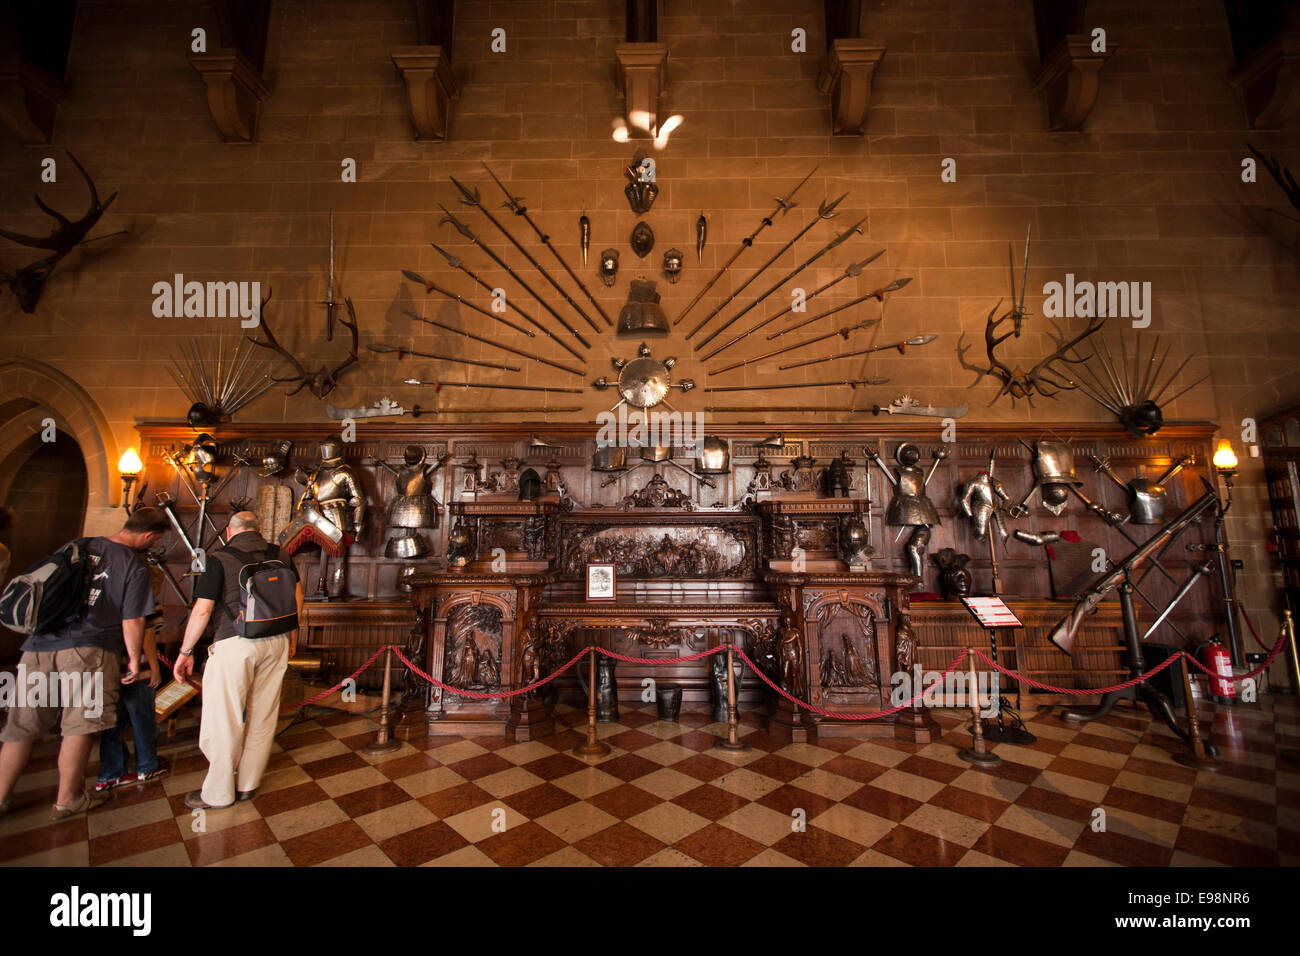 UK, England, Warwickshire, Warwick Castle, Great Hall visitors looking at the Kenilworth Buffet - Stock Image